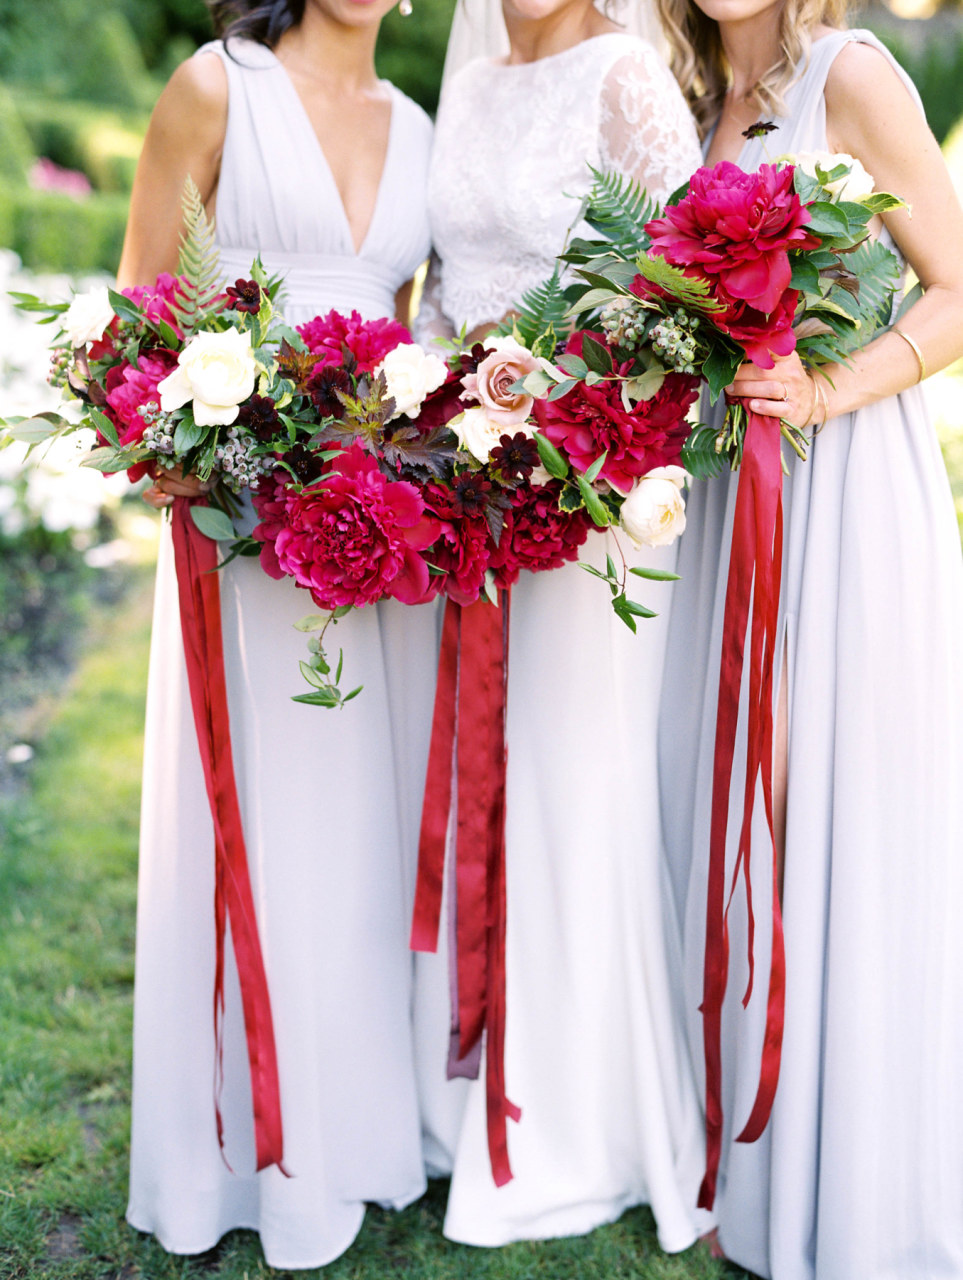 fine-art-wedding-florist-foraged-floral-lewis-and-clark-college-wedding-red-peonies.jpg